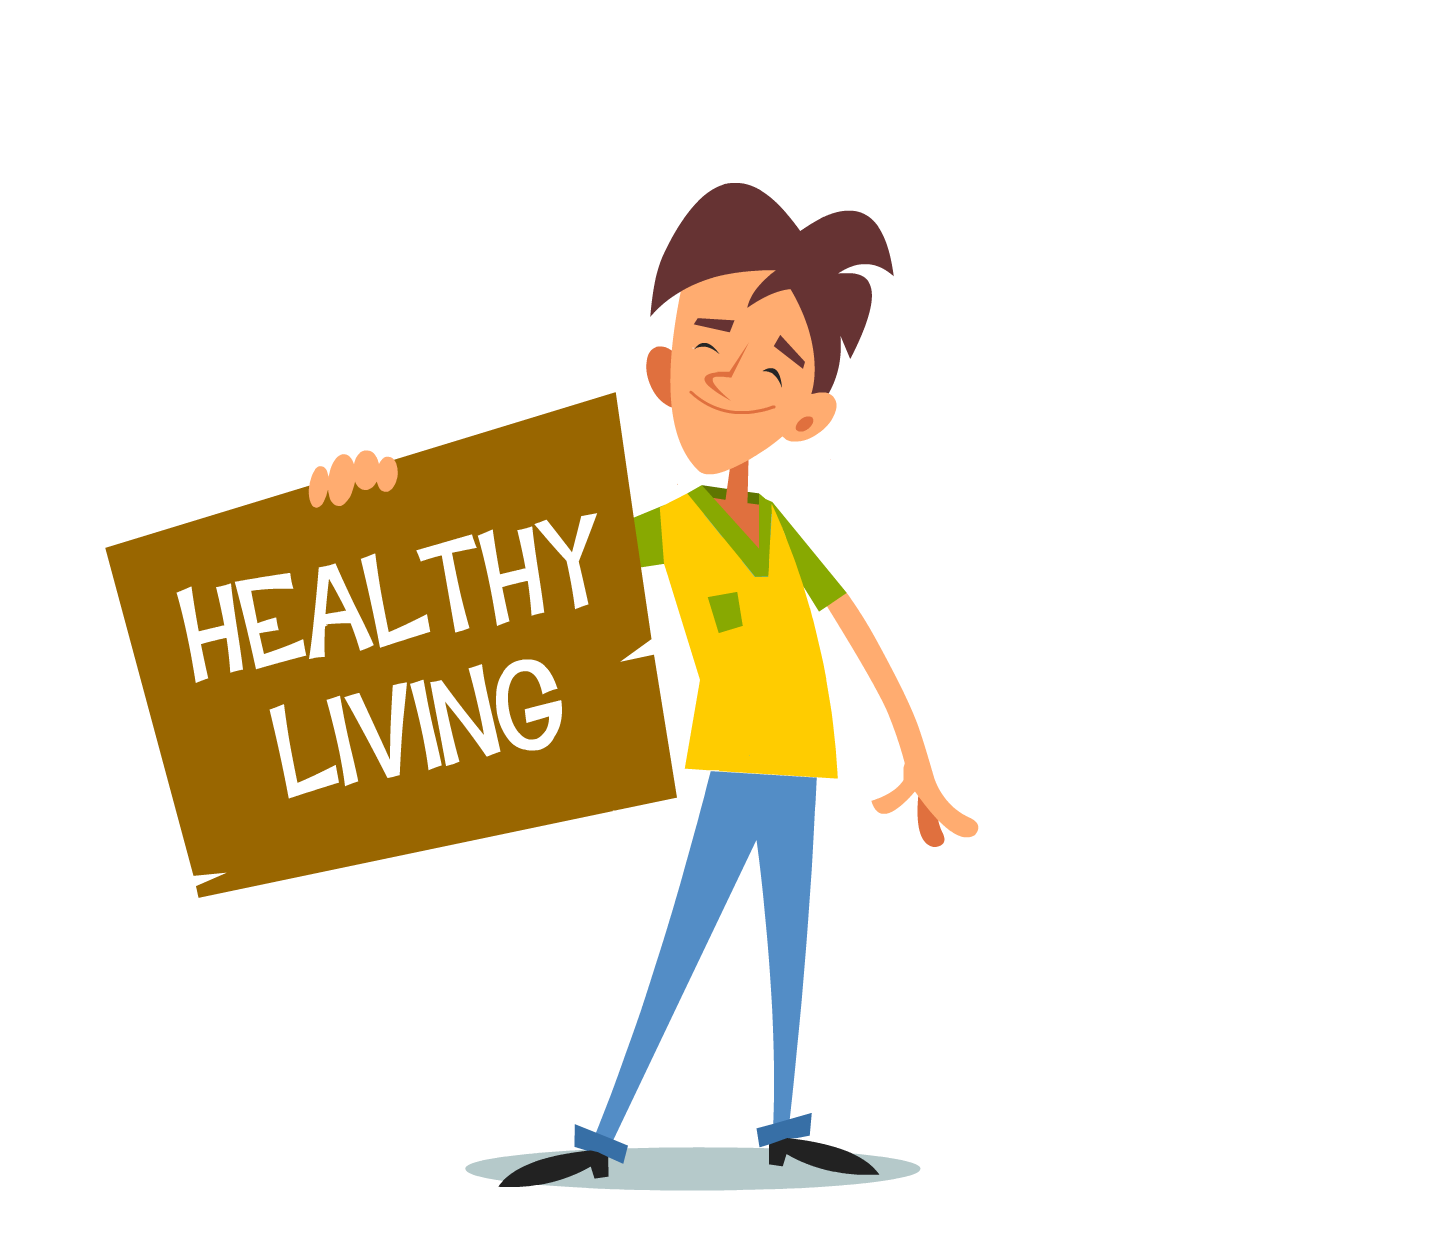 Energy clipart healthy living  your health Boost energy